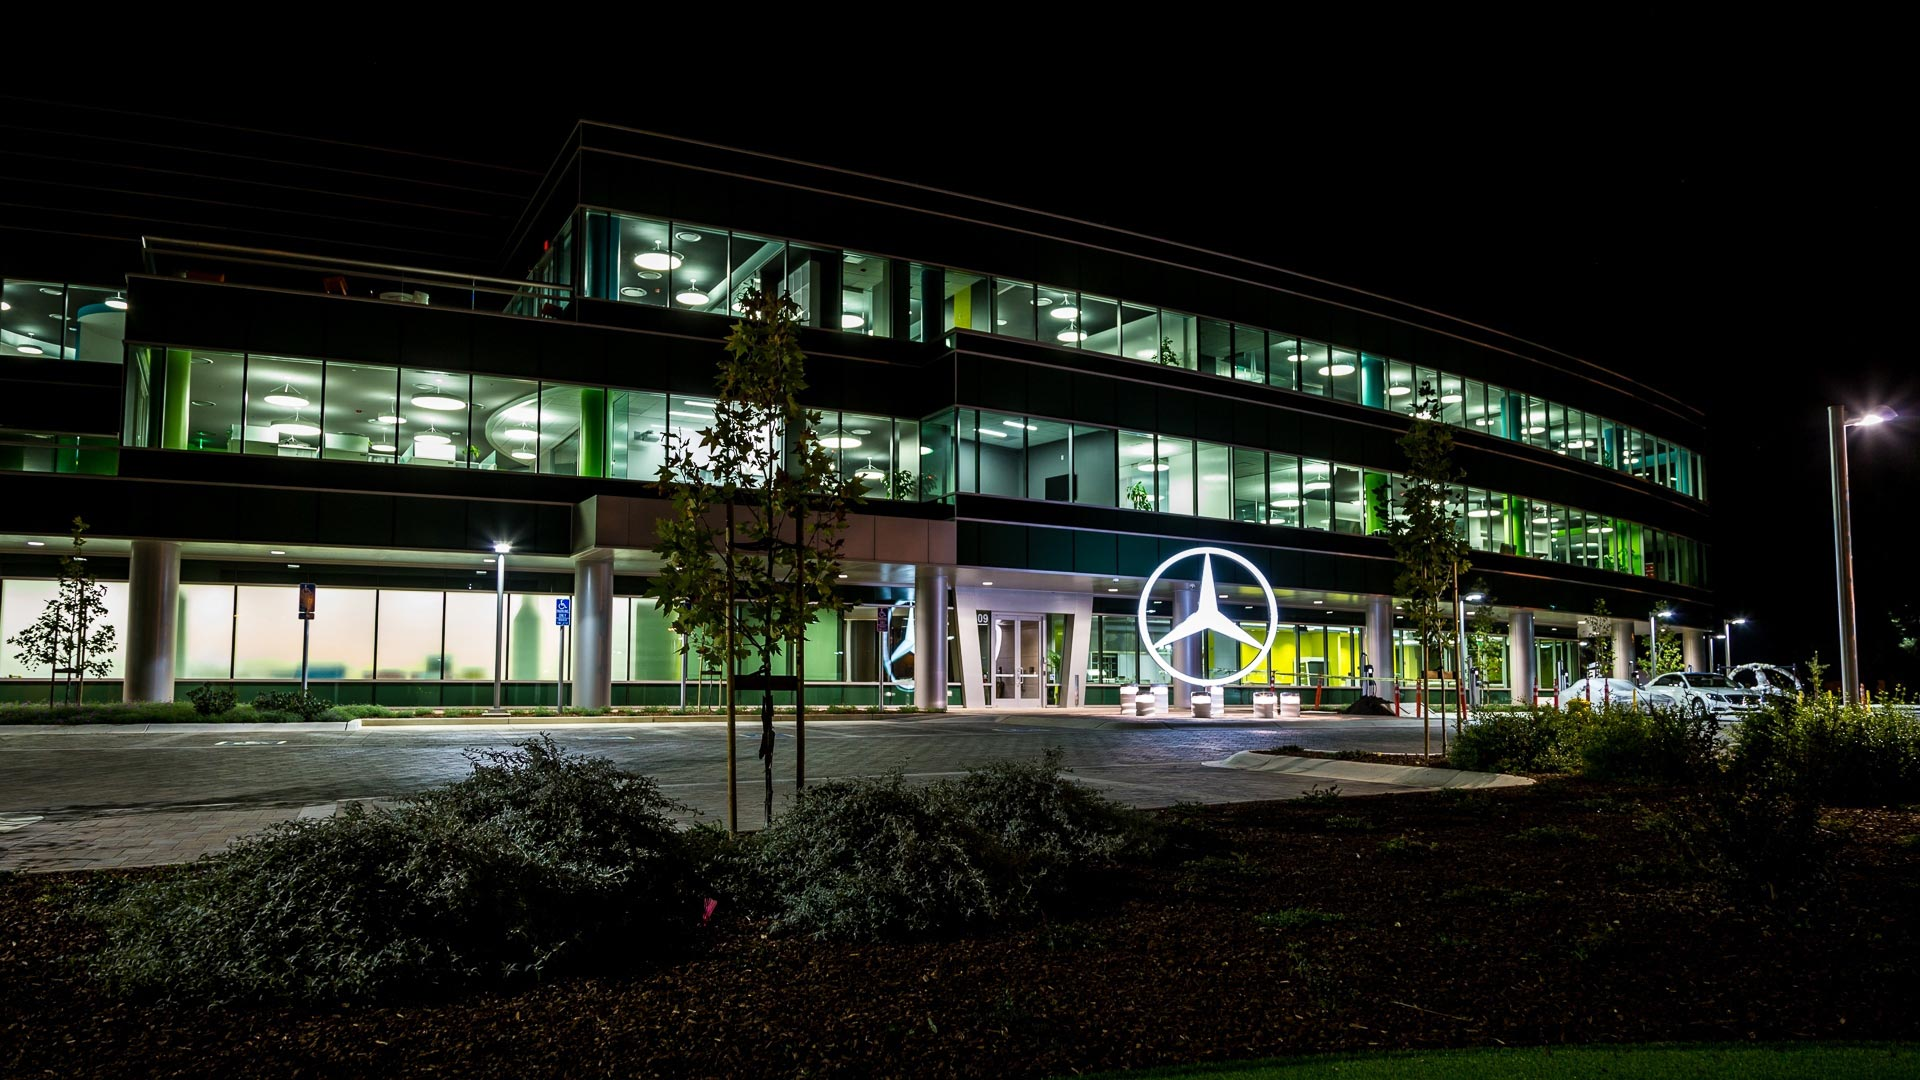 Mercedes-Benz owner to cut jobs